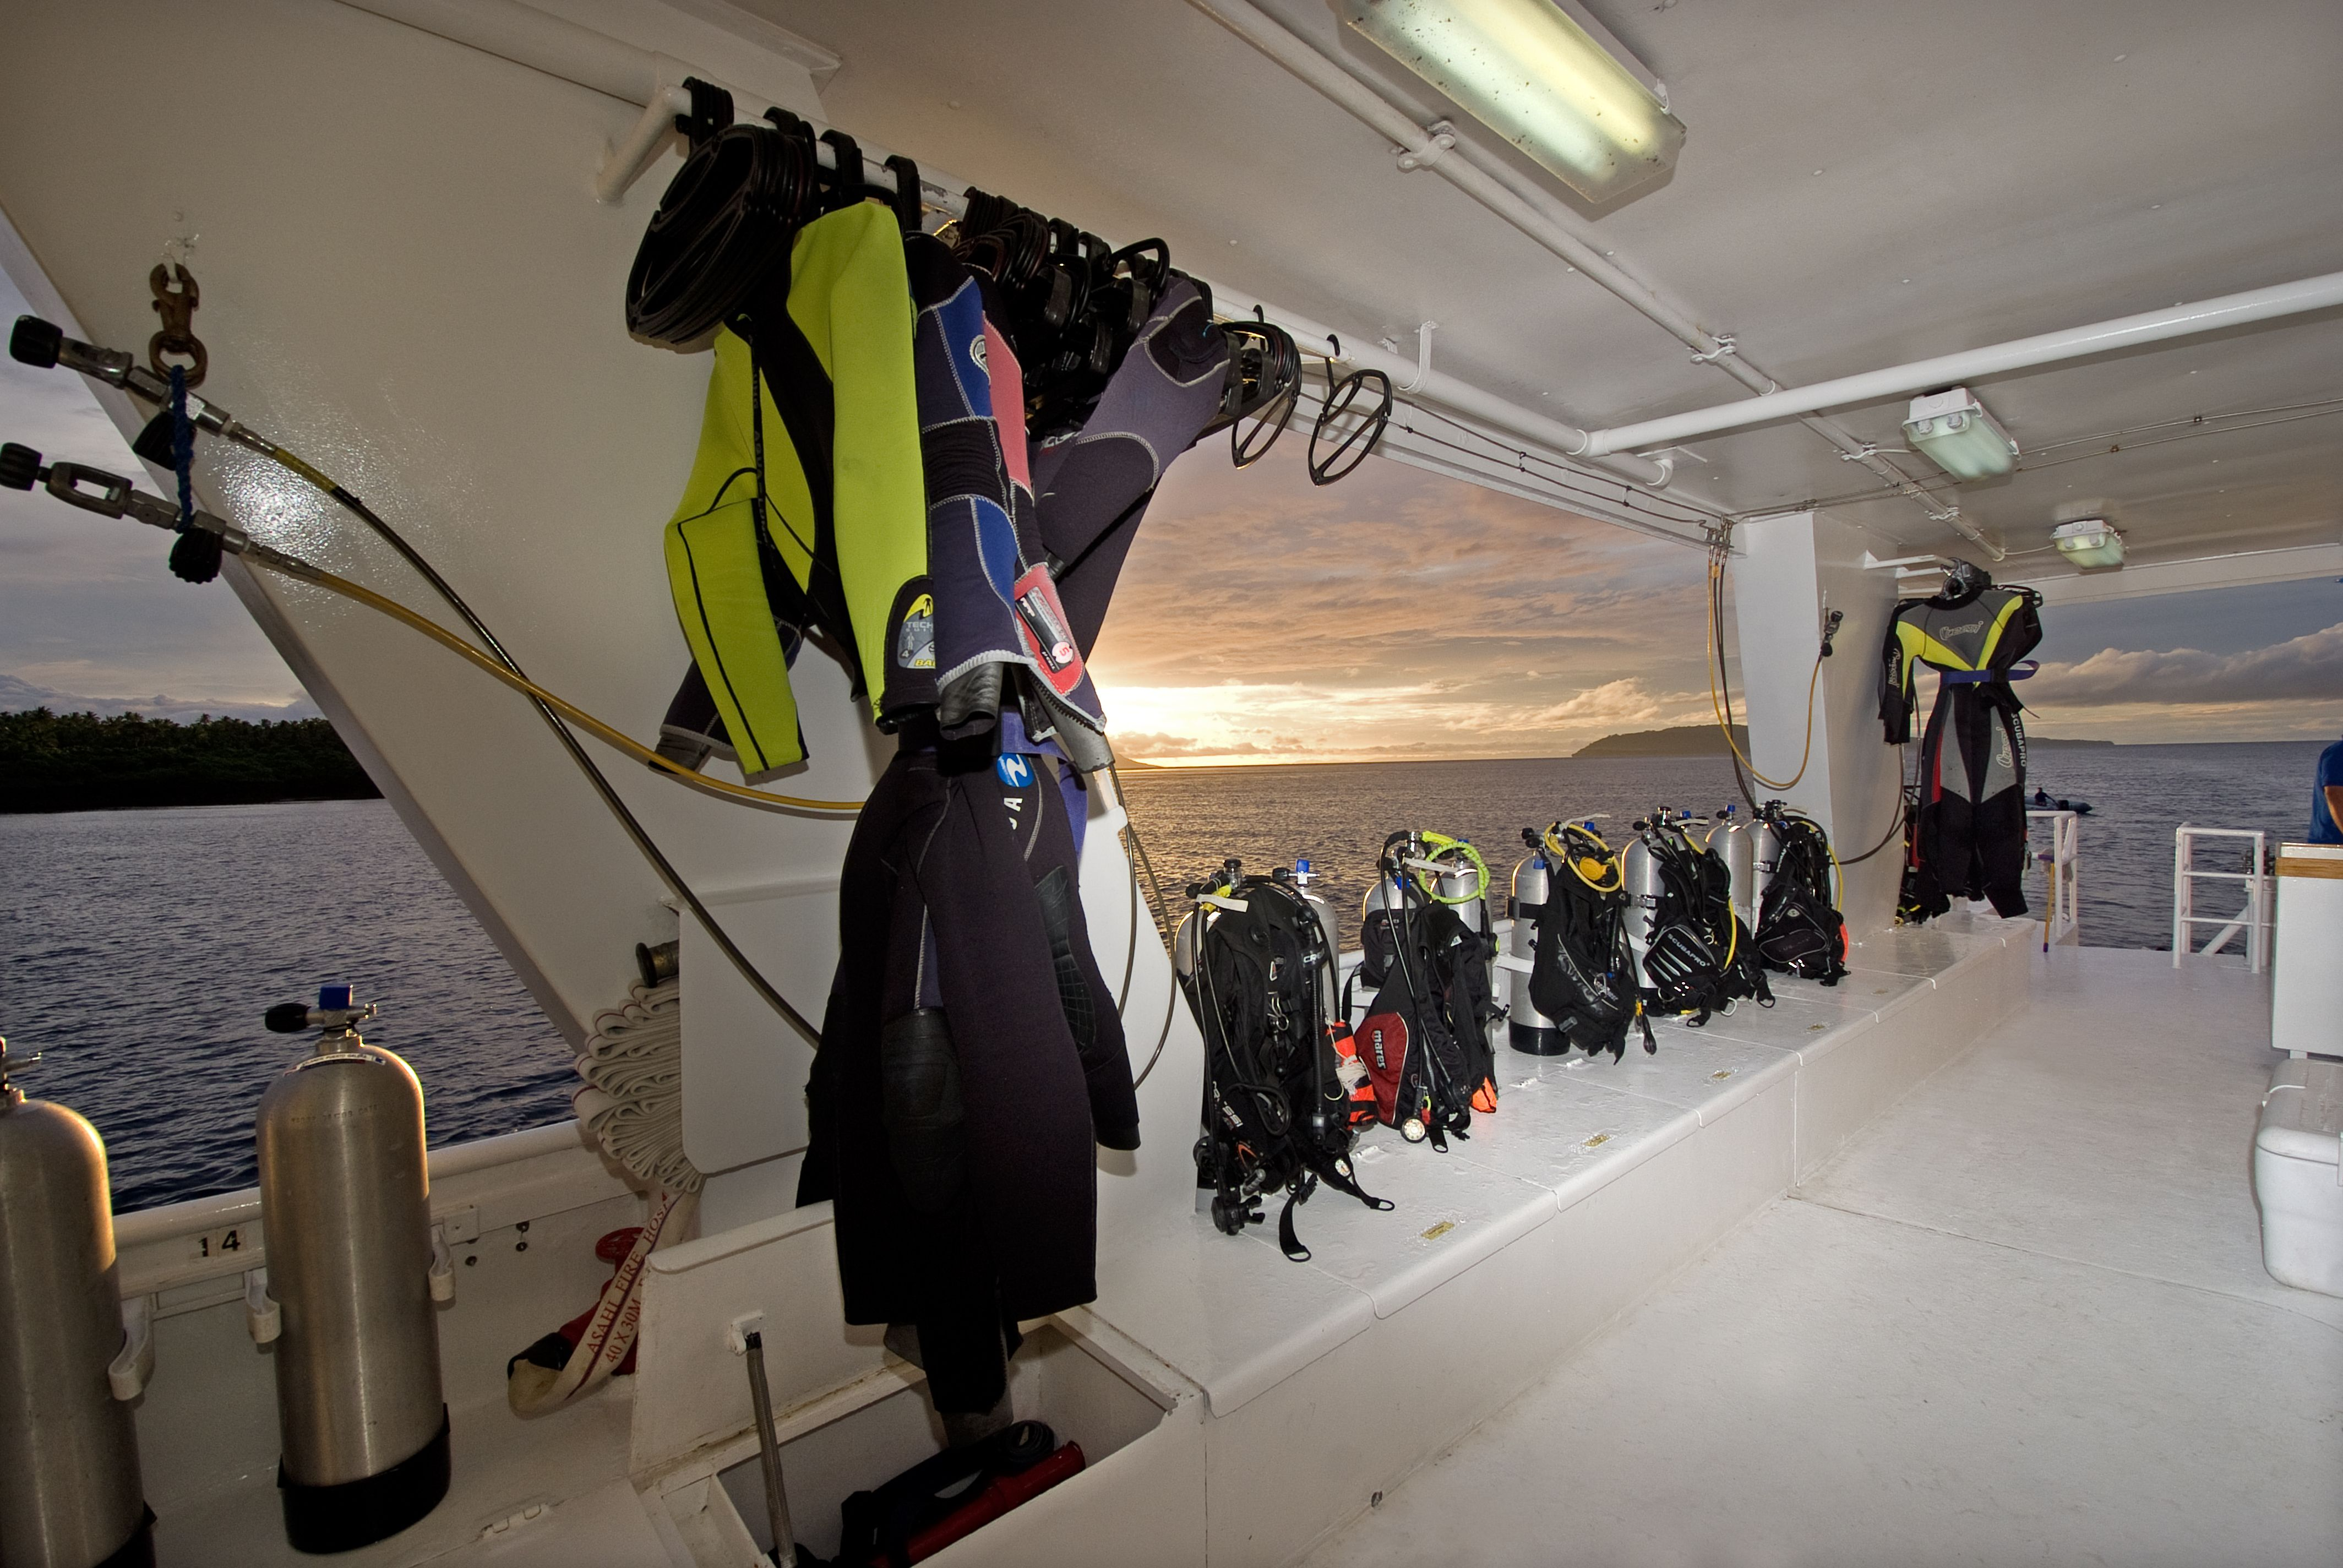 Our Spacious Dive Deck Allows You To Gear Up In Comfort A Roomy Three Tier Camera Table Is Available For Photographers Along With A Charging Station All Diver